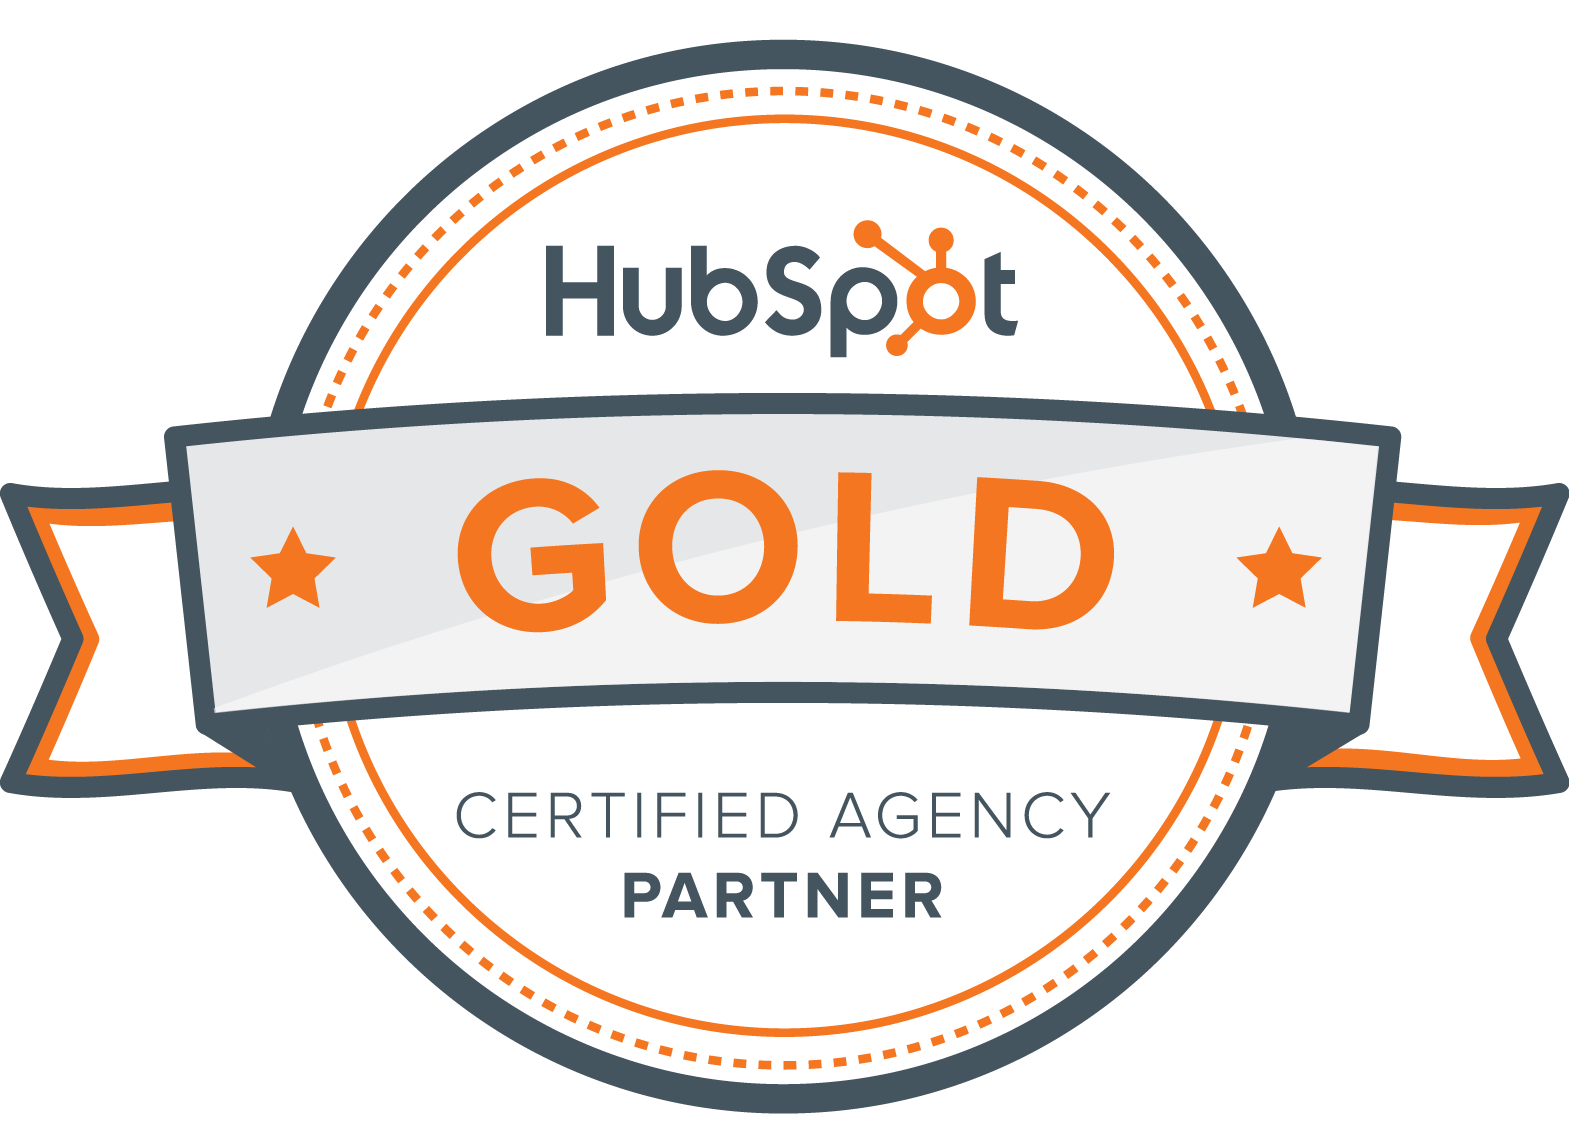 HubSpot+Gold+Certified+Agency+Partner+Analytics+That+Profit.png